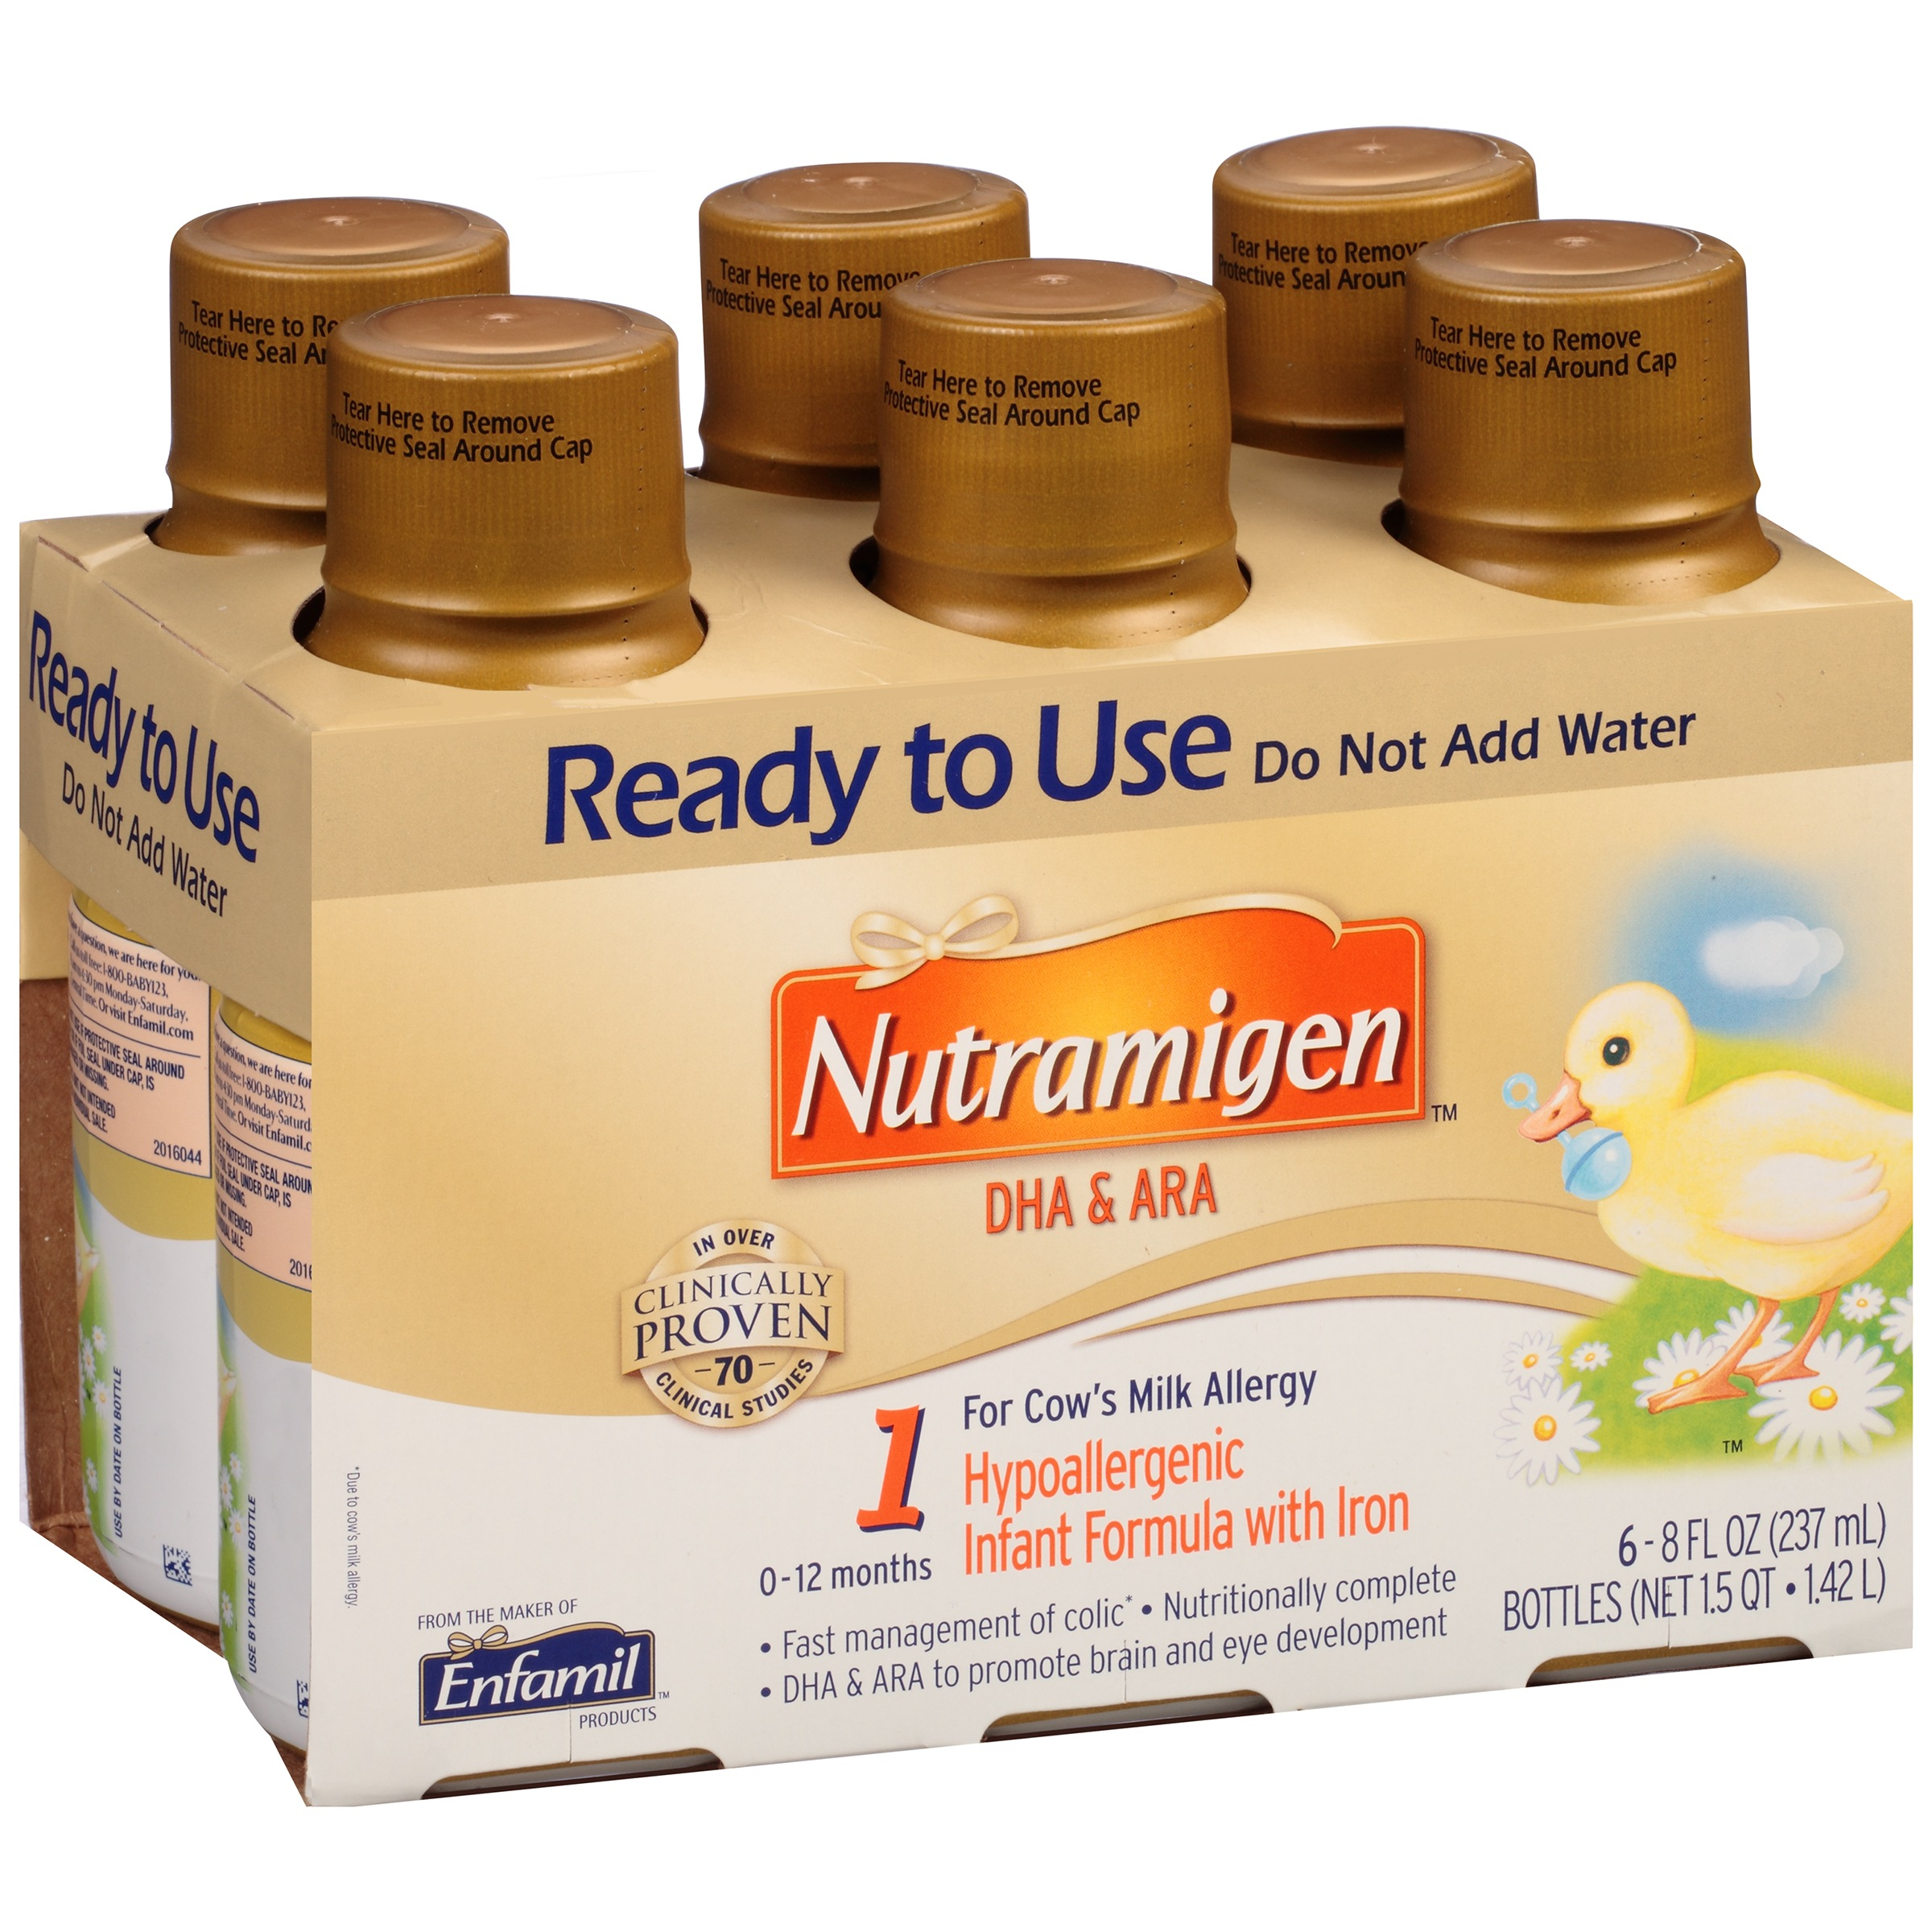 Nutramigen Hypoallergenic Ready to Use Infant Formula 6-8 fl. oz. Bottles